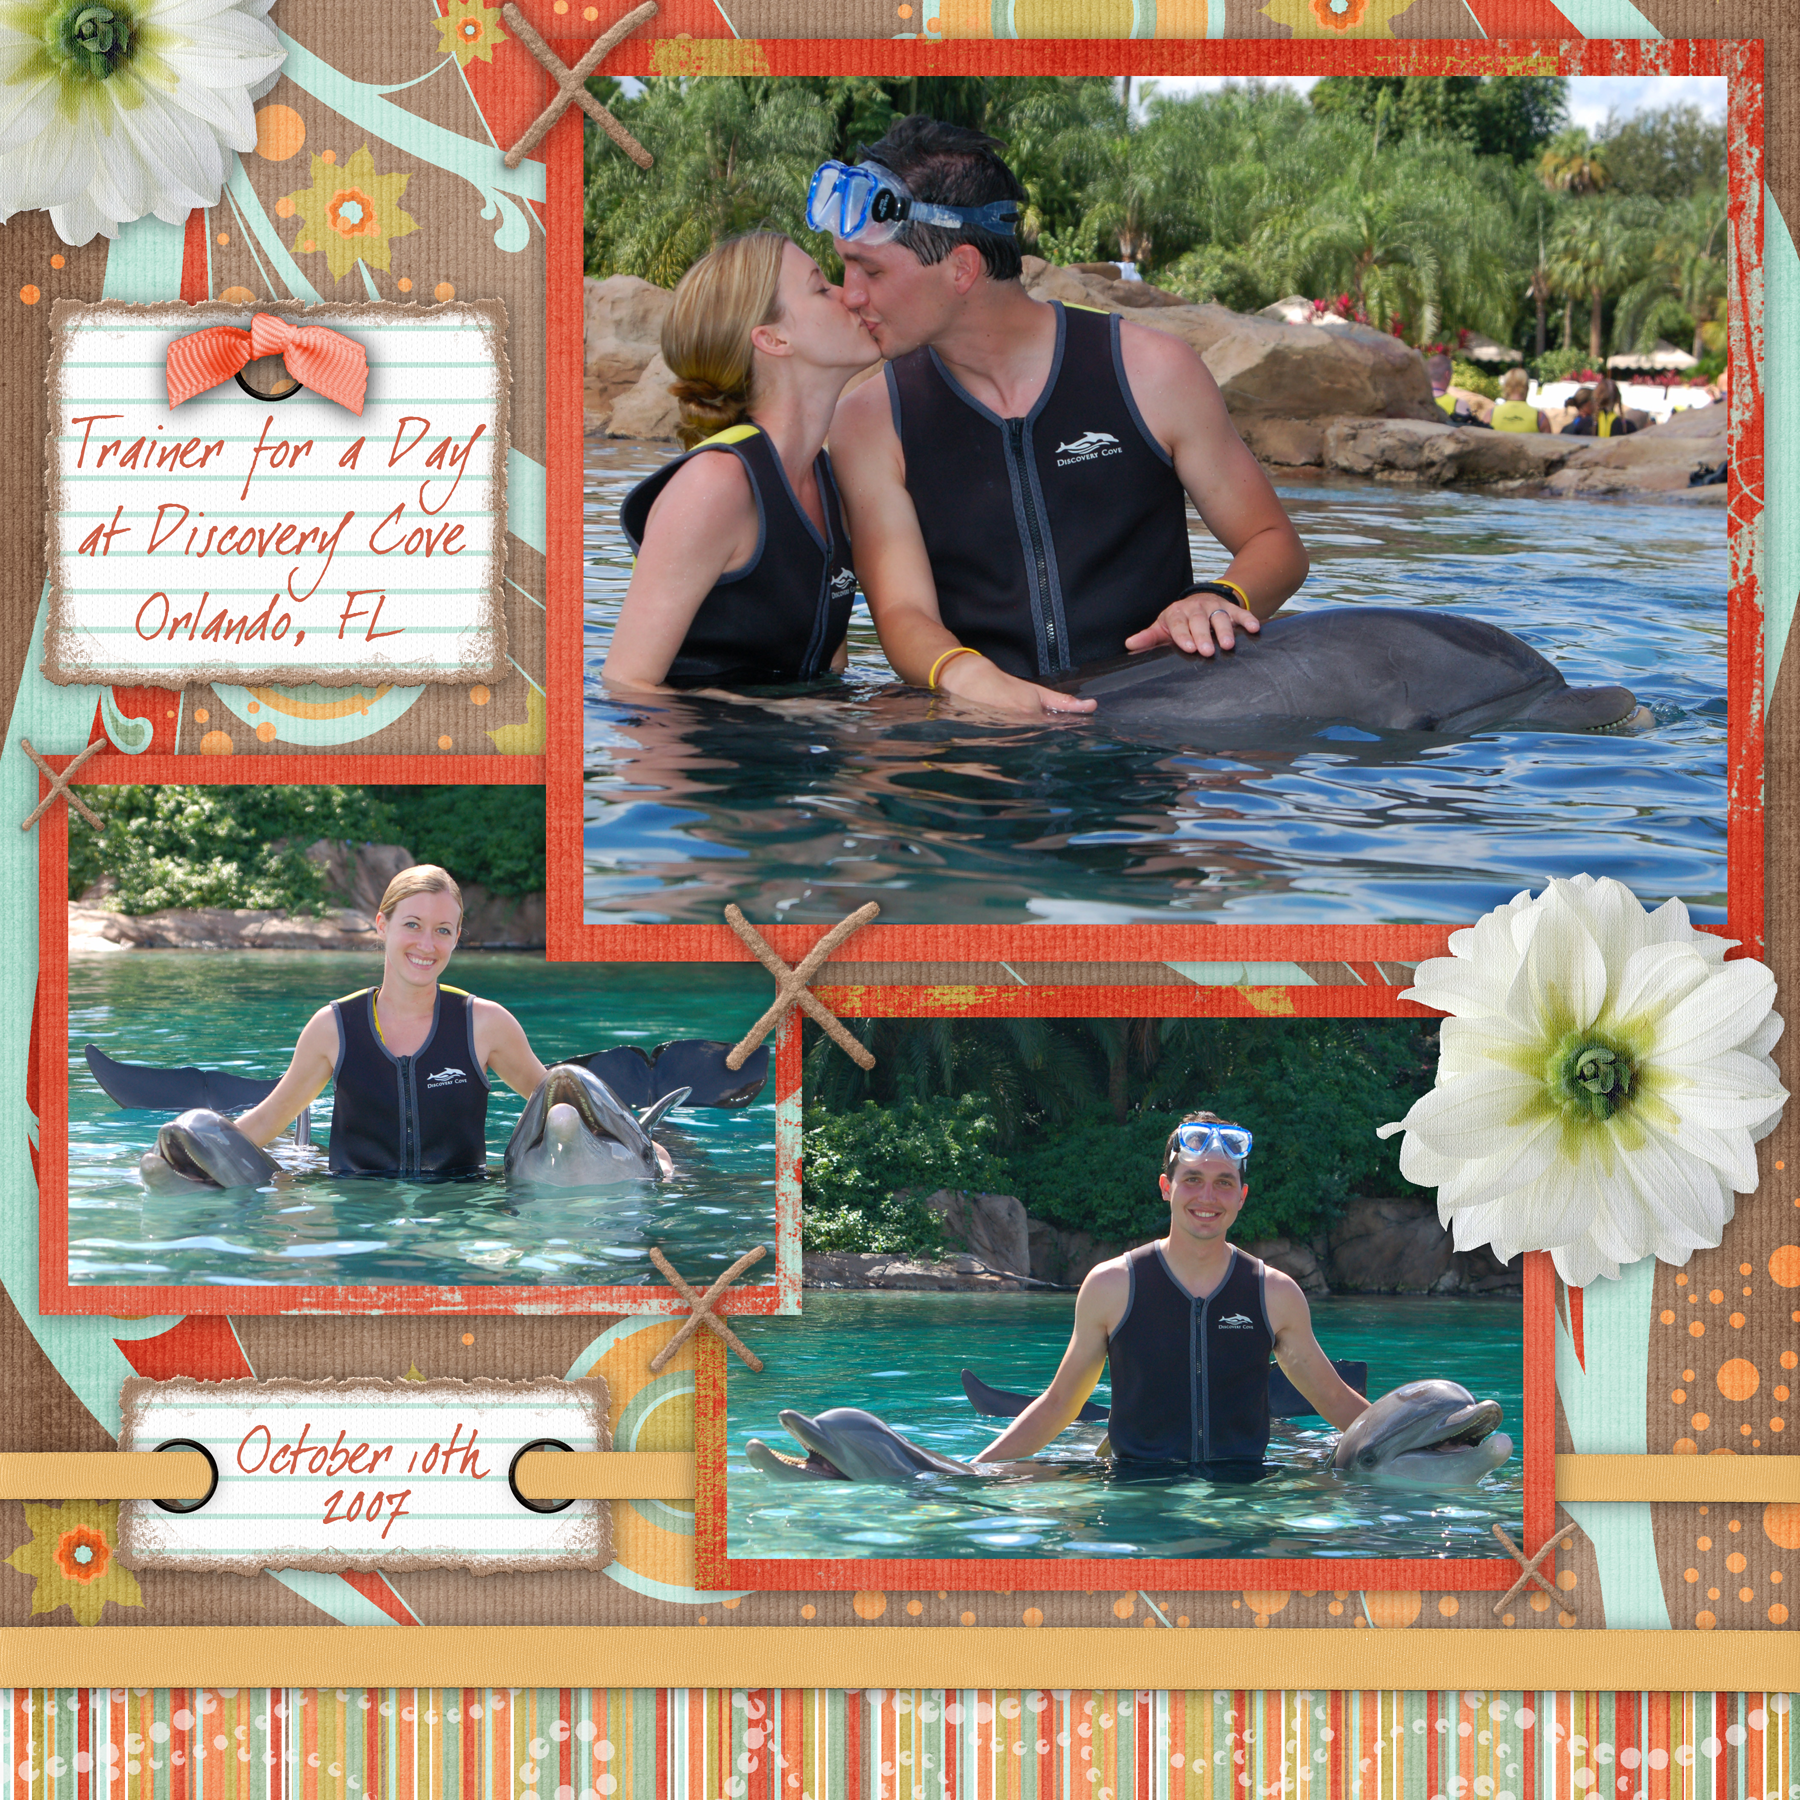 Honeymoon Scrapbook Google Search Great Use Of Color And Tagging